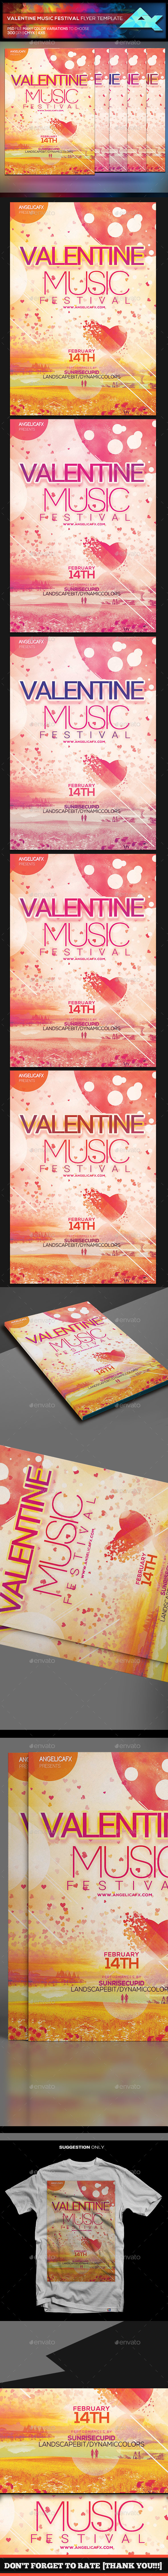 Valentine Music Festival - Events Flyers